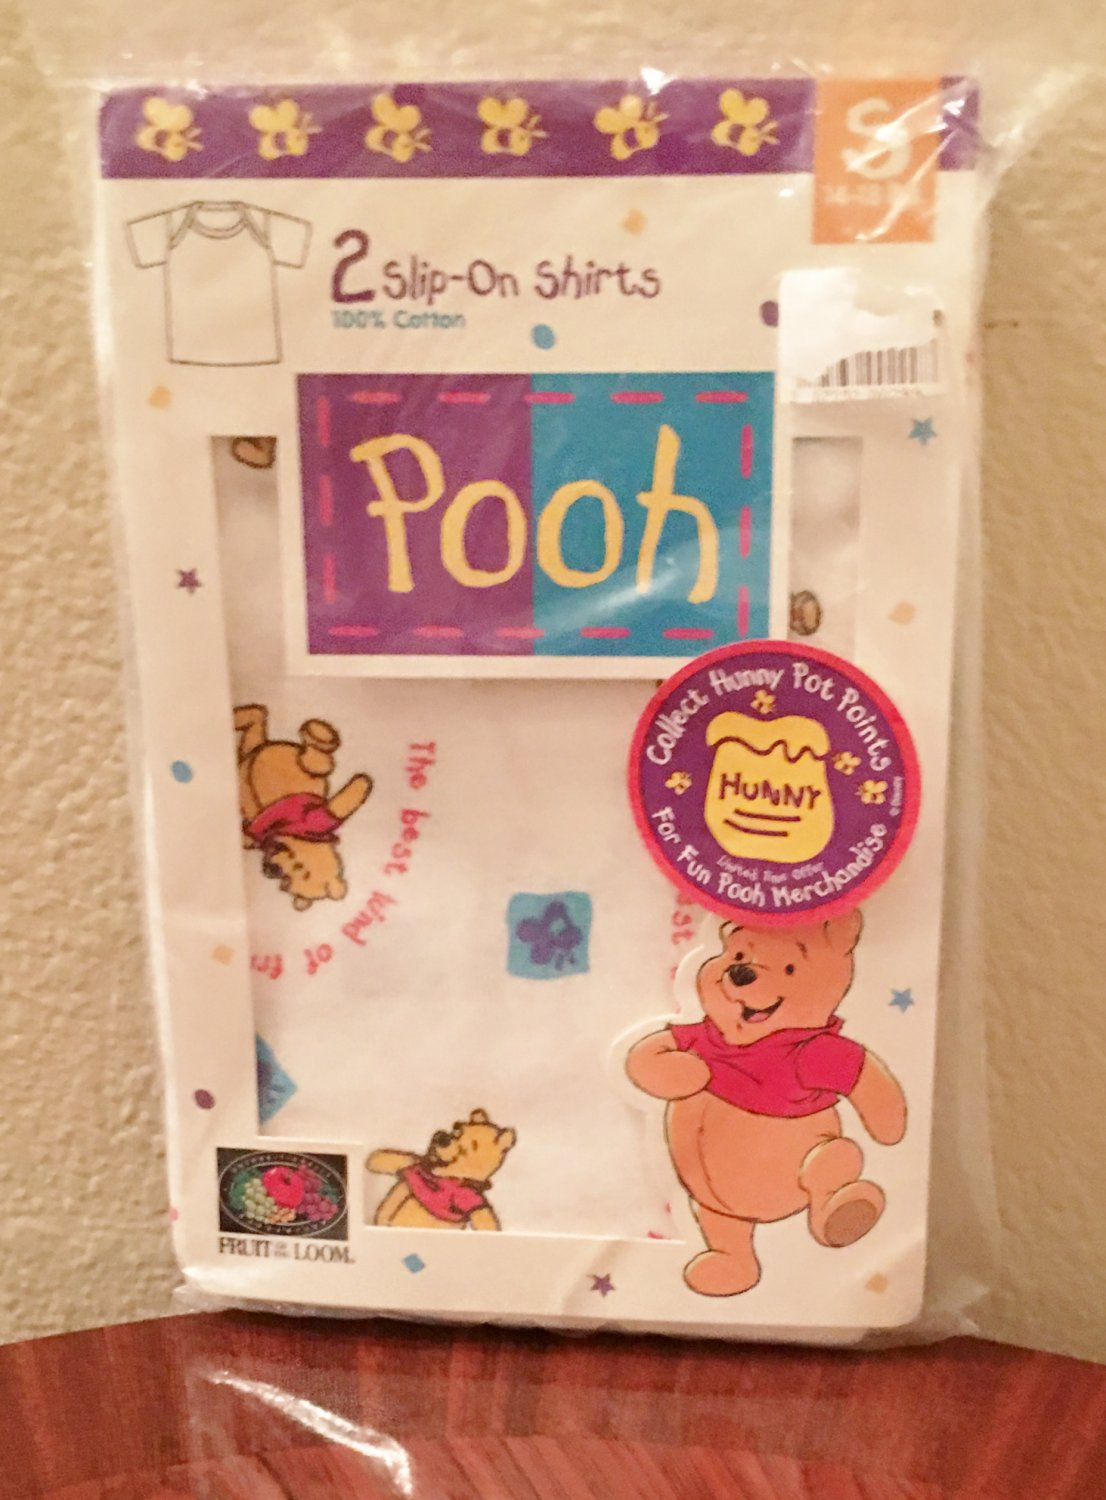 NWT Baby WINNIE the POOH Infant SLIP ON SHIRTS SMALL (14-18 lbs) 100% Cotton 2 PACK